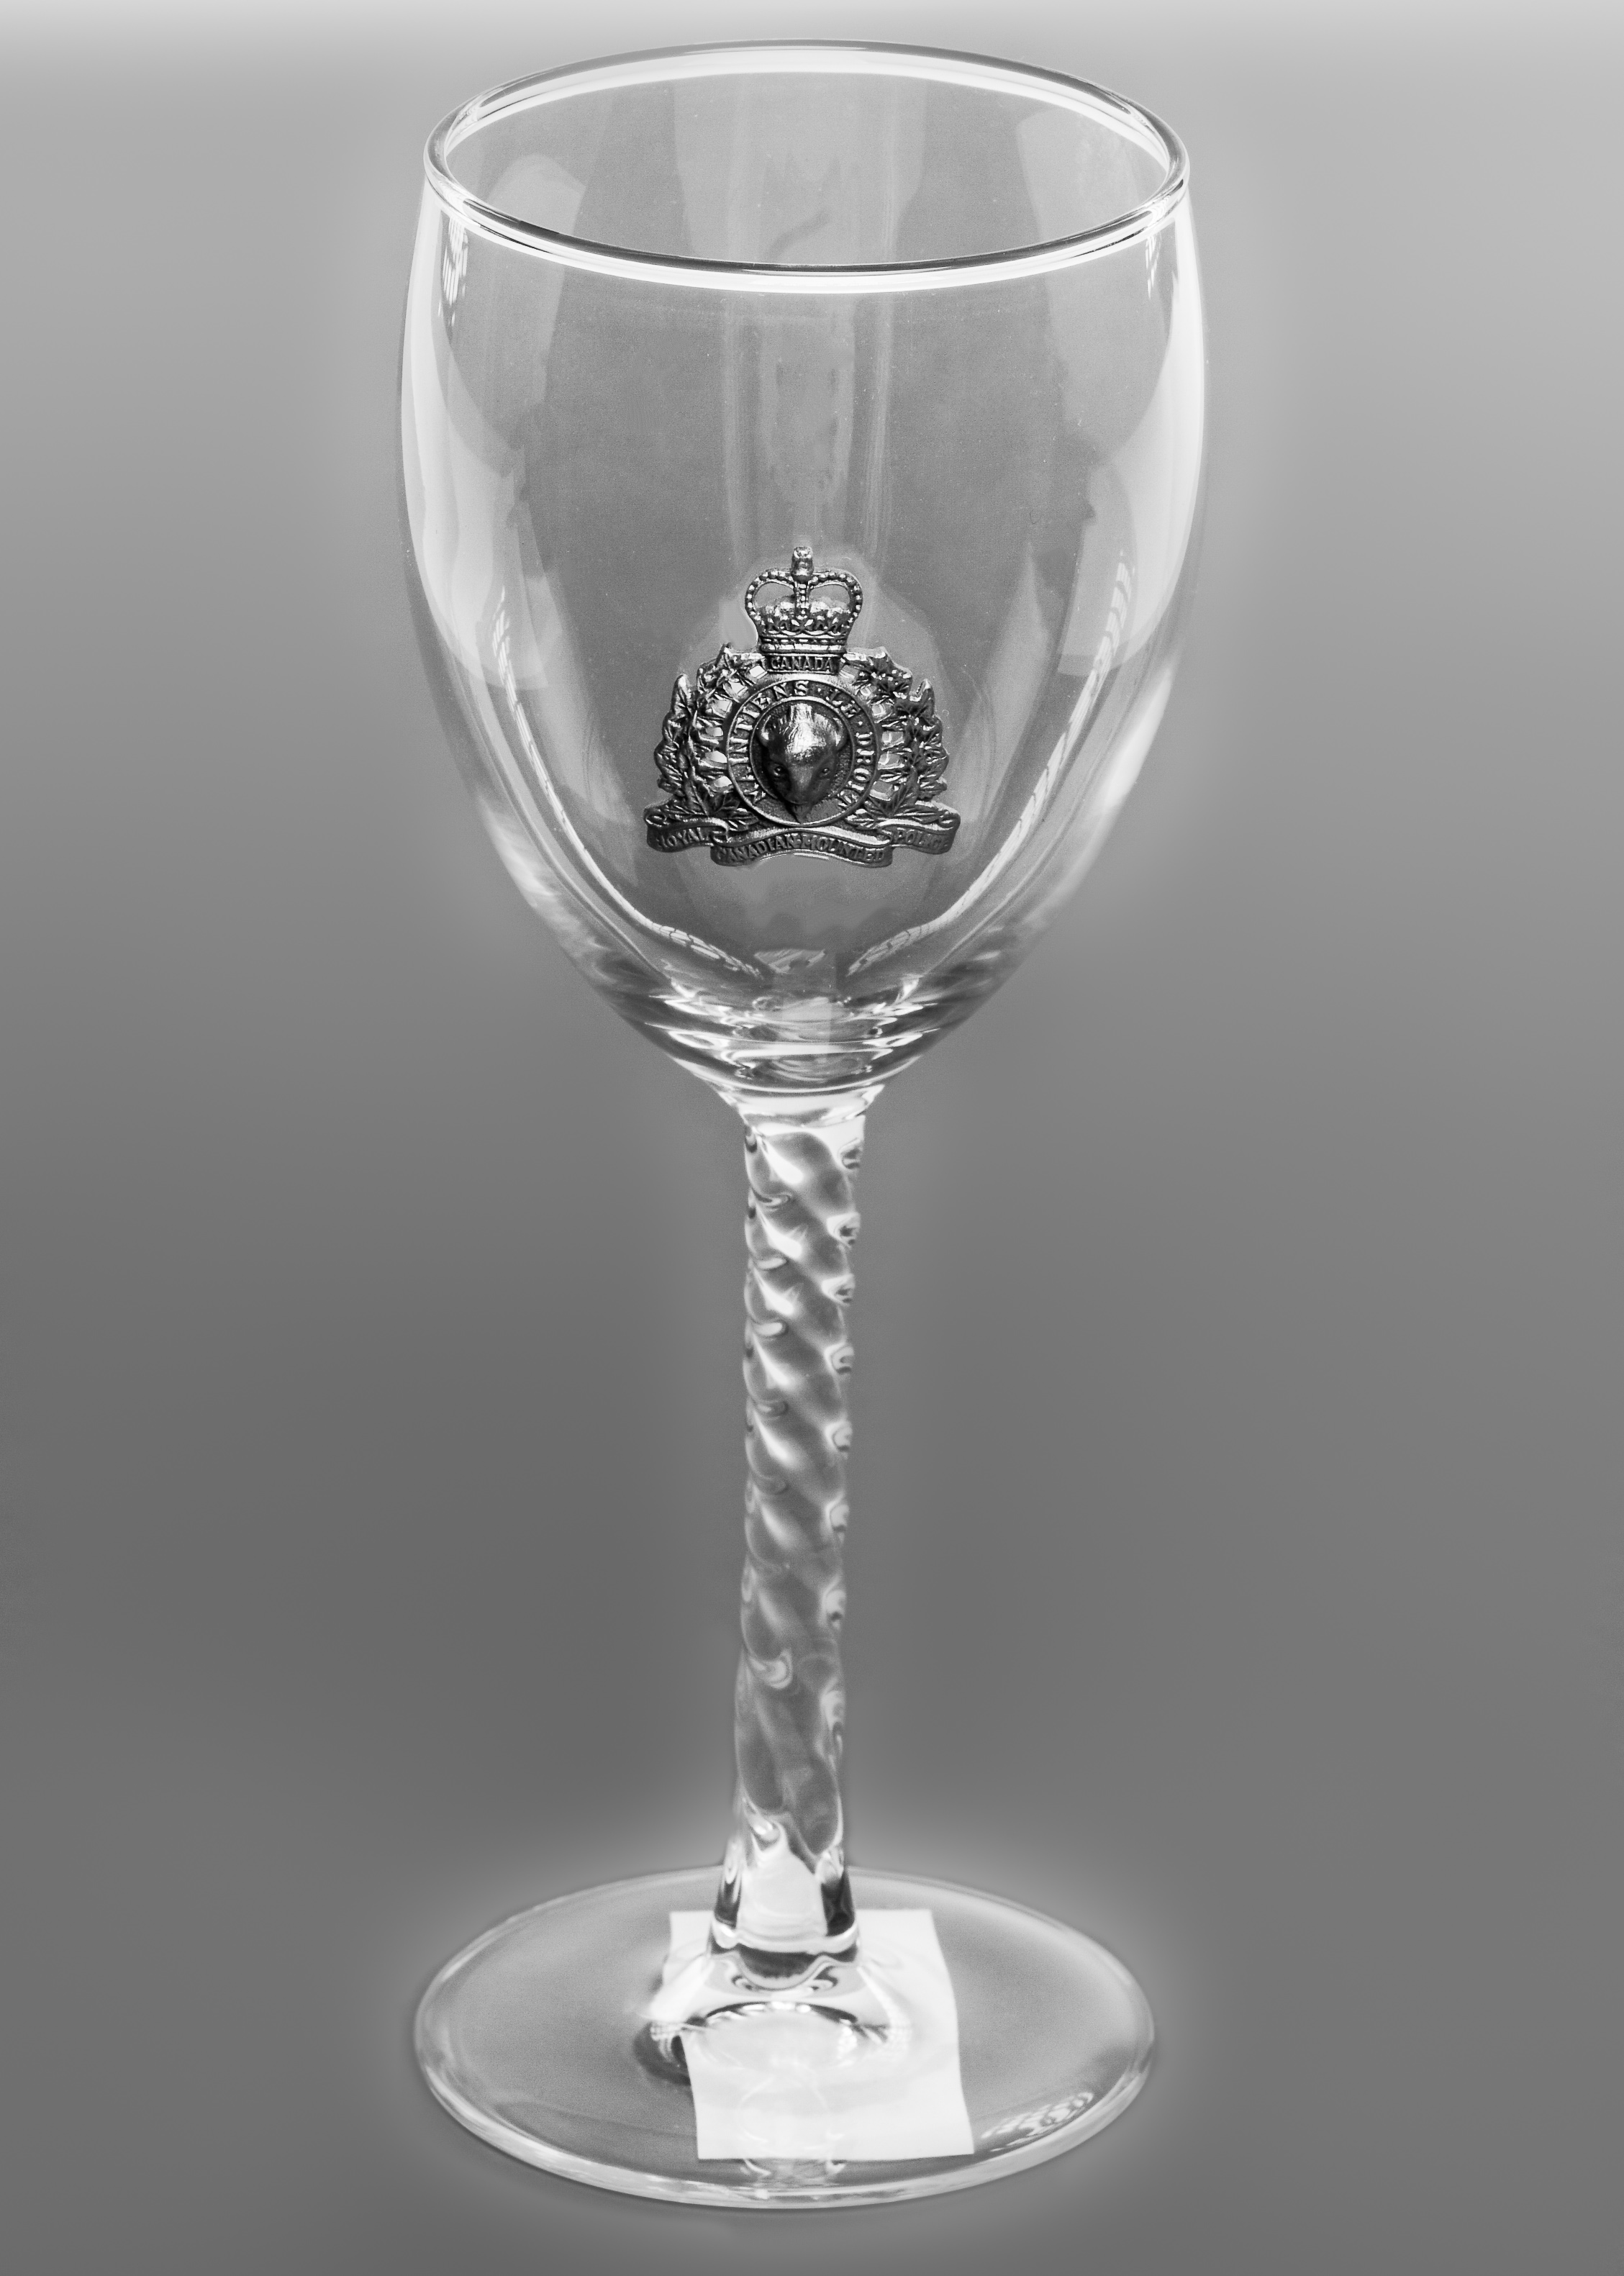 Pewter RCMP Crested Wine Glass